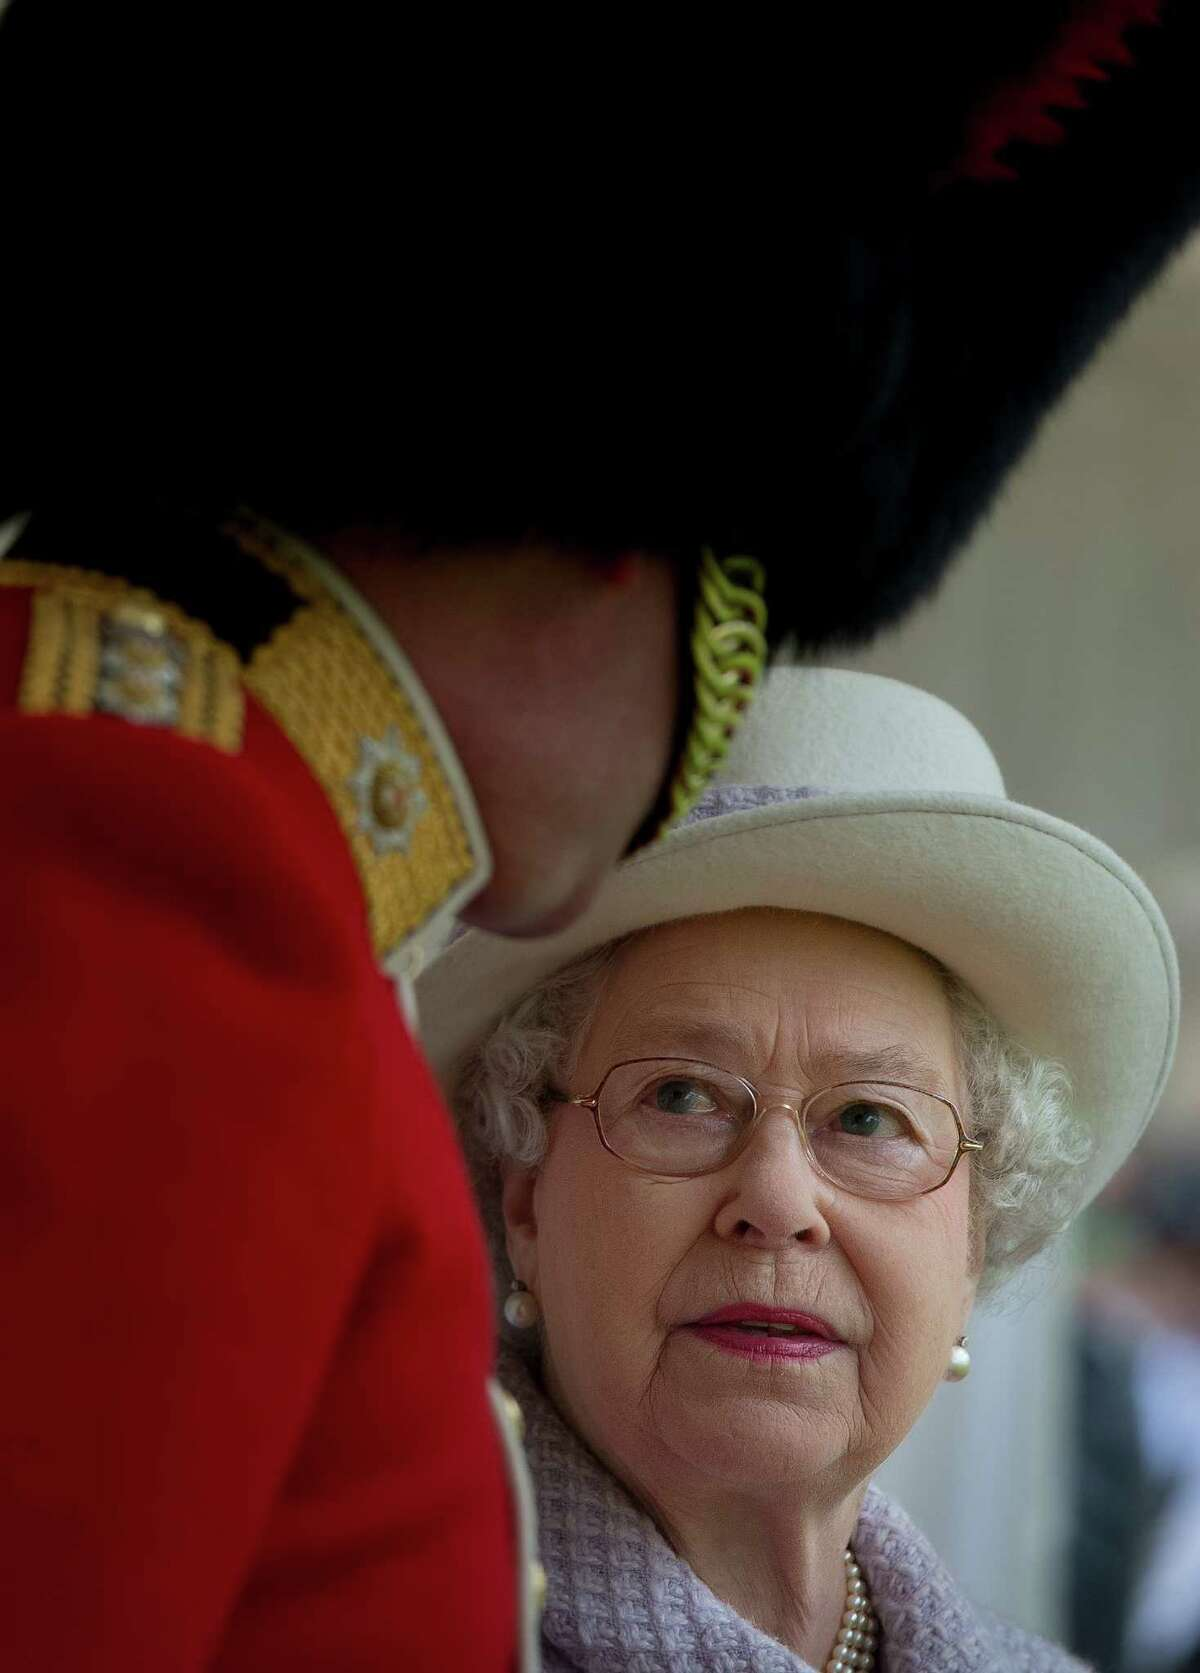 Britain's Queen Elizabeth II (R) talks with an officer as she watches a ceremony in which she presented New Colours to the 1st Battalion and No. 7 Company the Coldstream Guards at Windsor Castle, Berkshire, west of London, on May 3, 2012. The Queen presented New Colours to the 1st Battalion and No. 7 Company of the Coldstream Guards and then inspected the Parade. The Coldstream Guards, the oldest regiment in the British Army, will form part of the guard for Trooping the Colour in honour the the Queen's birthday in June following which the regiment will prepare for deployment to Afghanistan once more. AFP PHOTO / POOL / BEN STANSALLBEN STANSALL/AFP/GettyImages